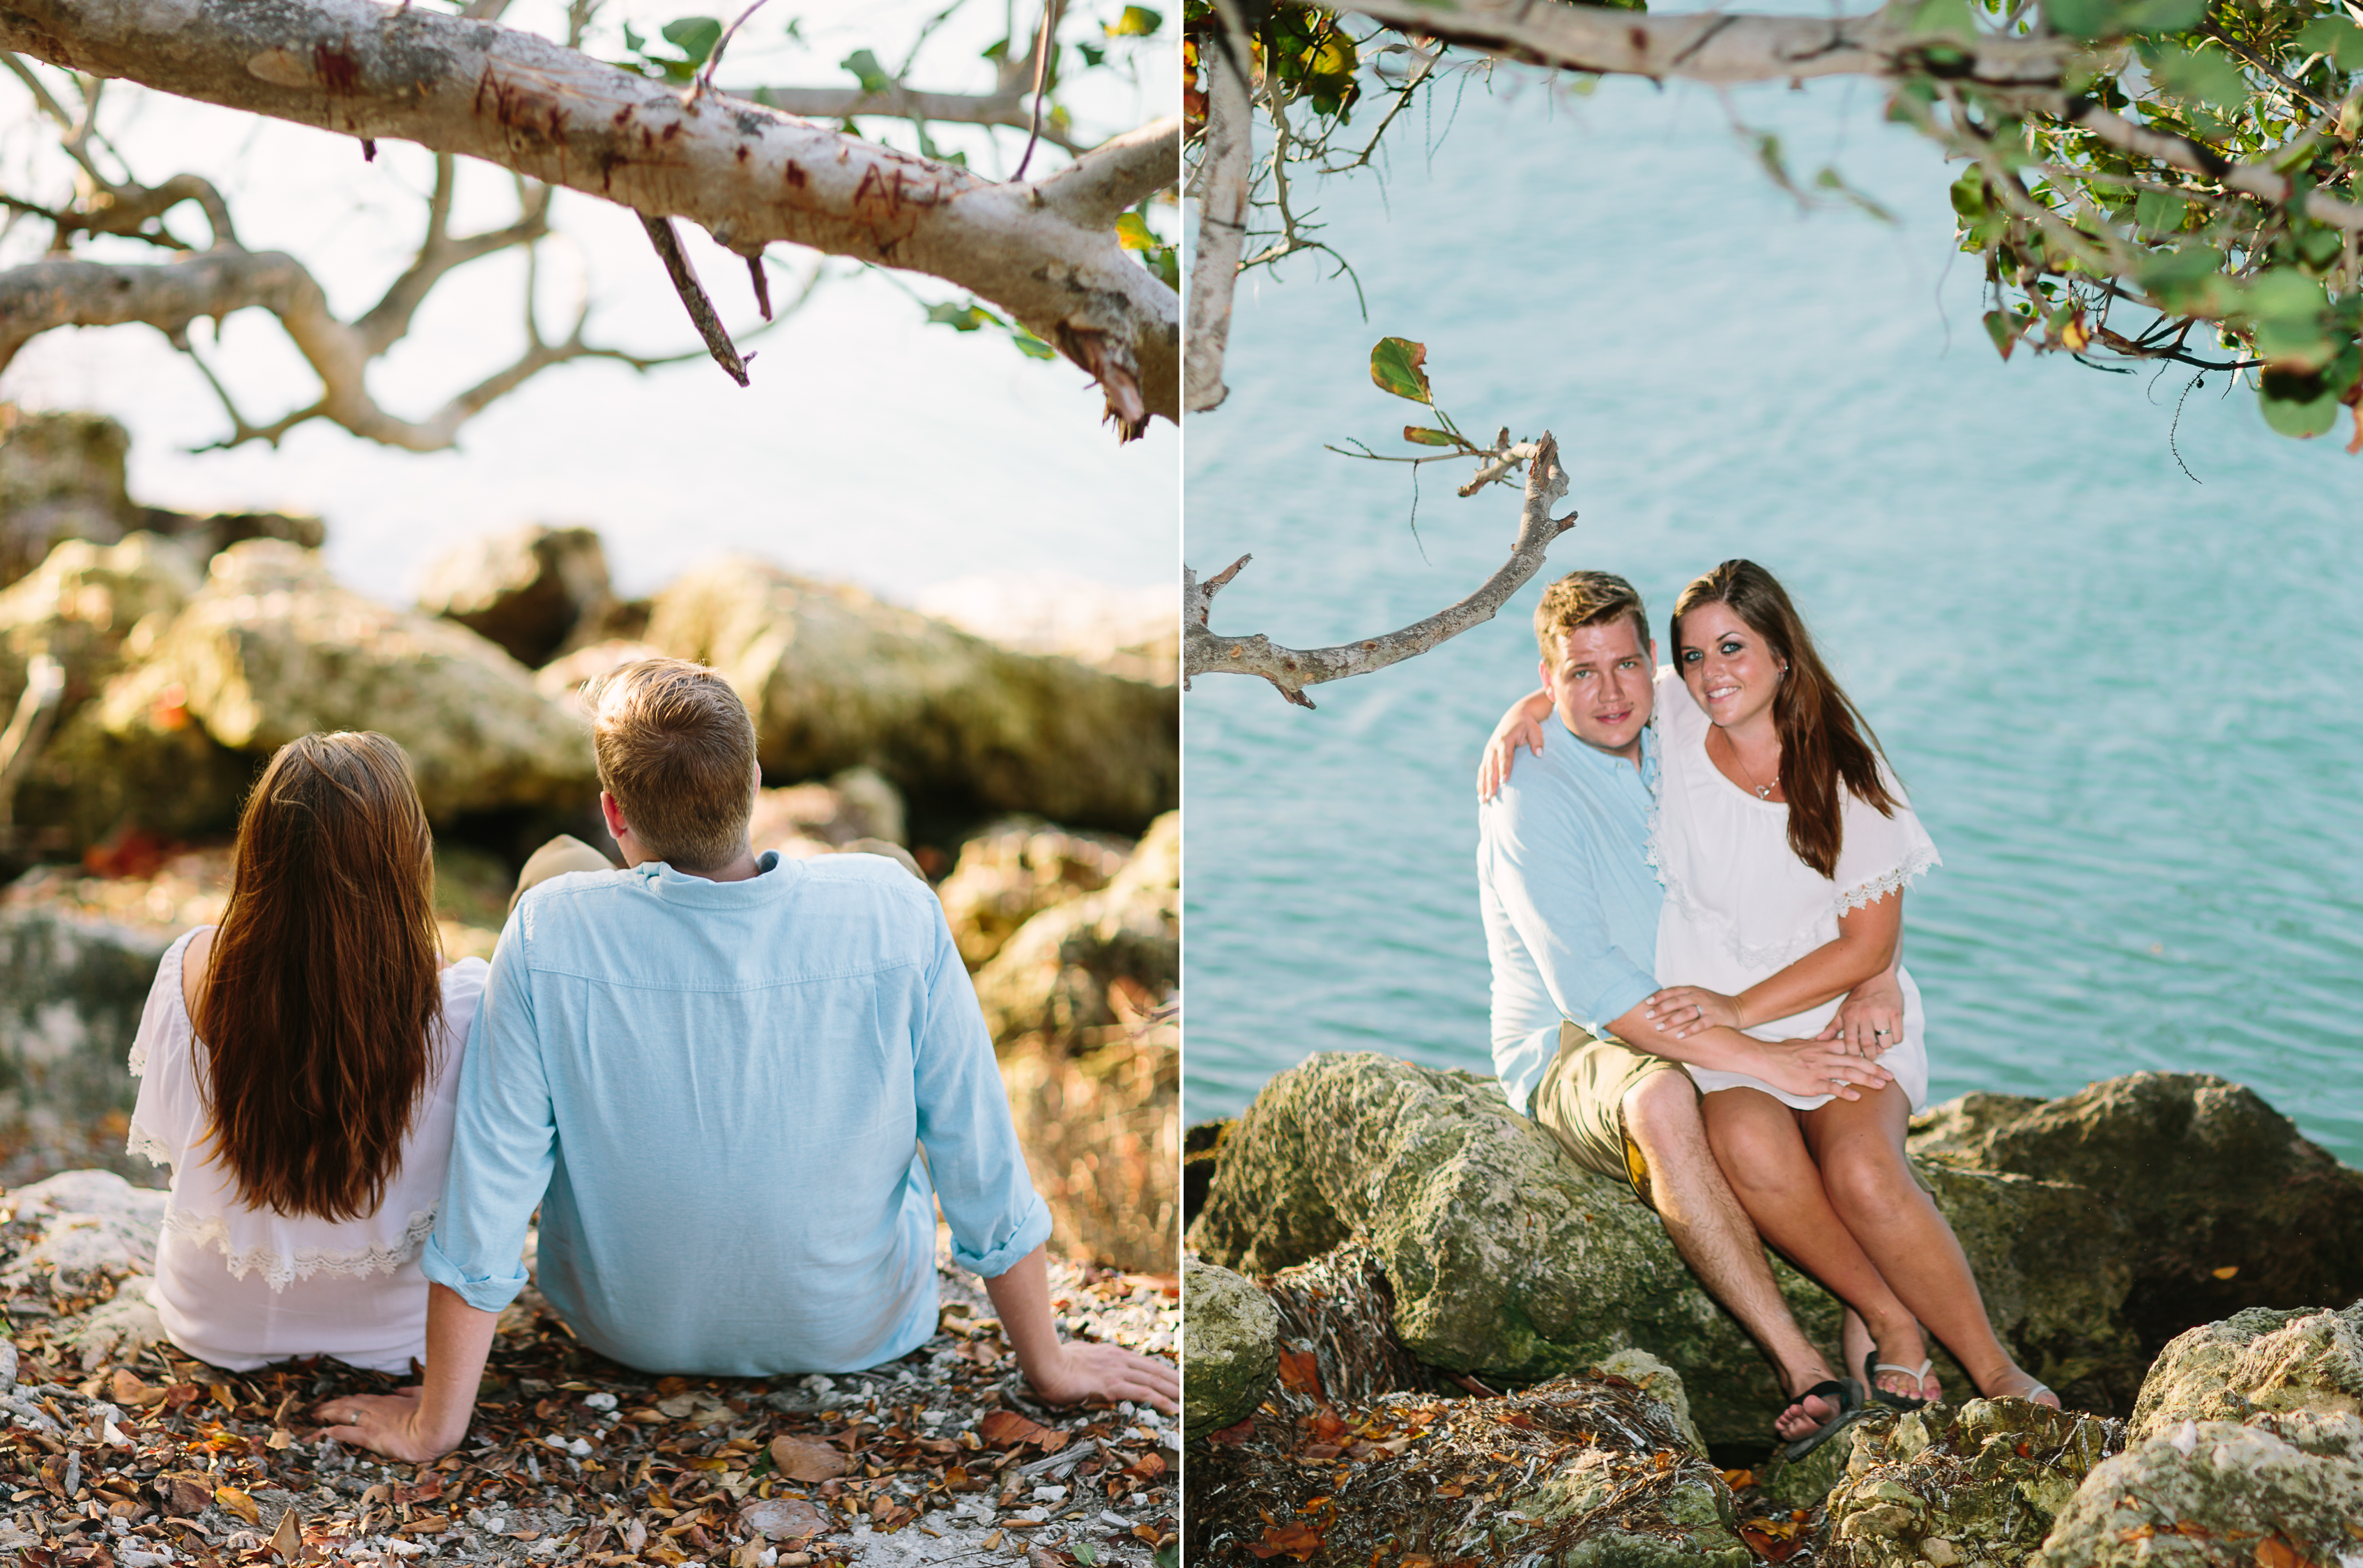 Islamorada Engagement session, Islamorada Florida Weddings, Islamorada photographer, Florida Keys photographers 08